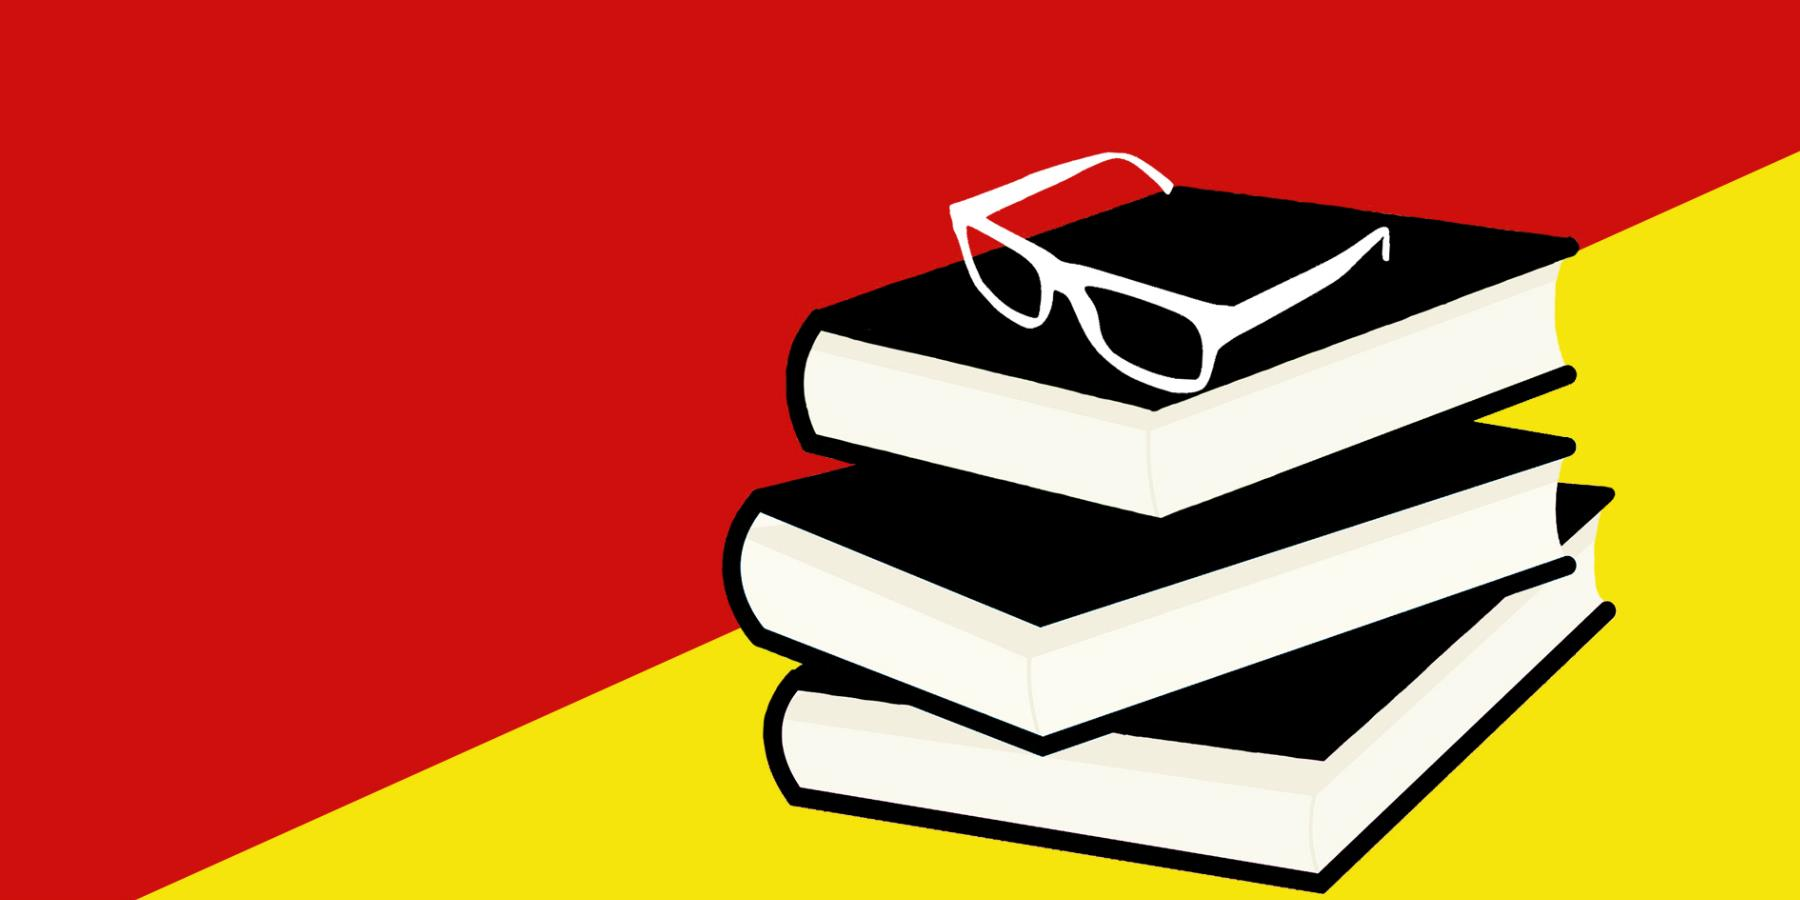 A pair of glasses on top of a pile of books on a red and yellow background.